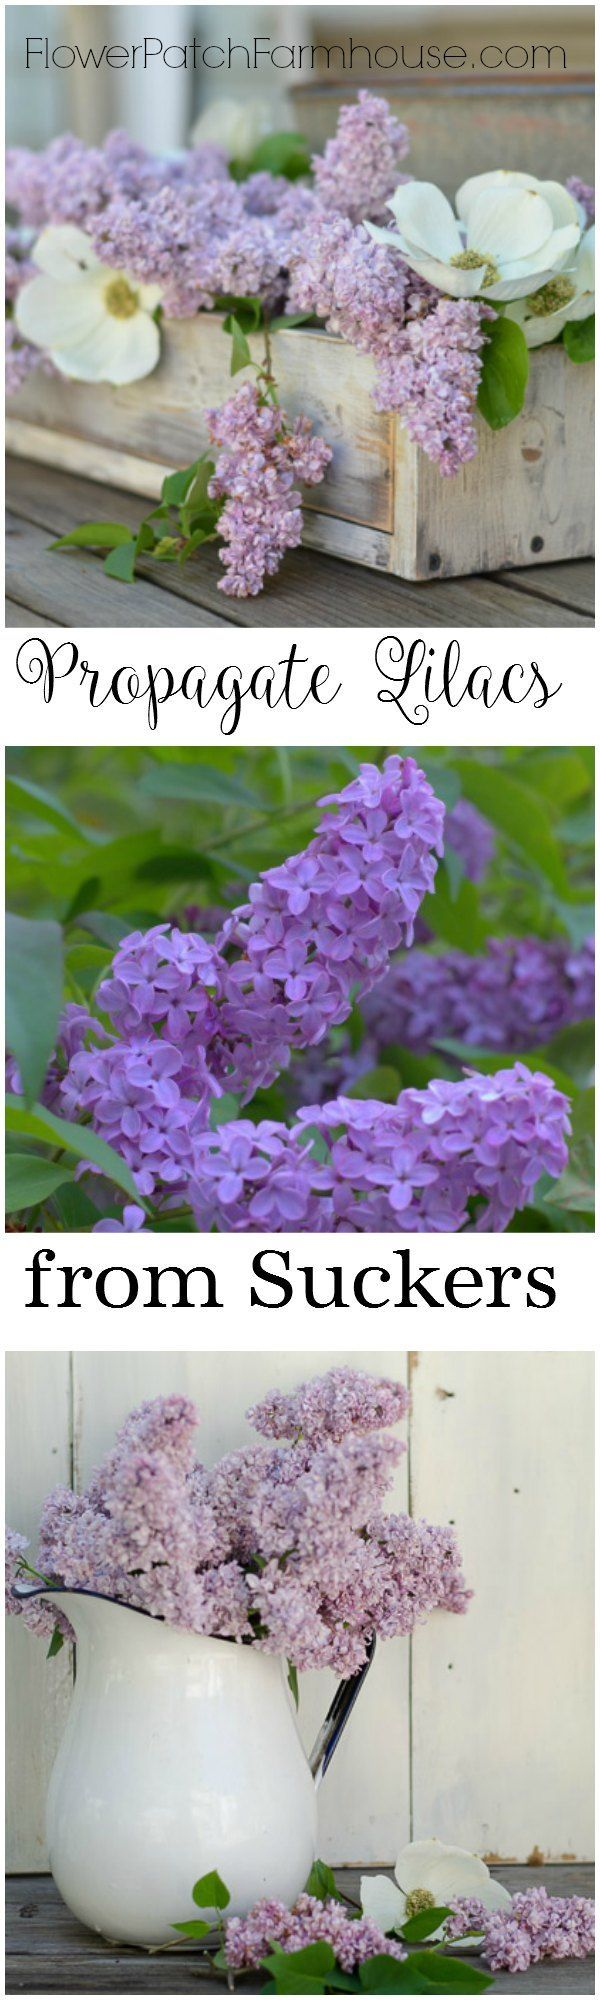 Best 20 spring garden ideas on pinterest spring flowers dream a favorite spring flower is the lilac these perennial bushes which can grow to tree dhlflorist Images